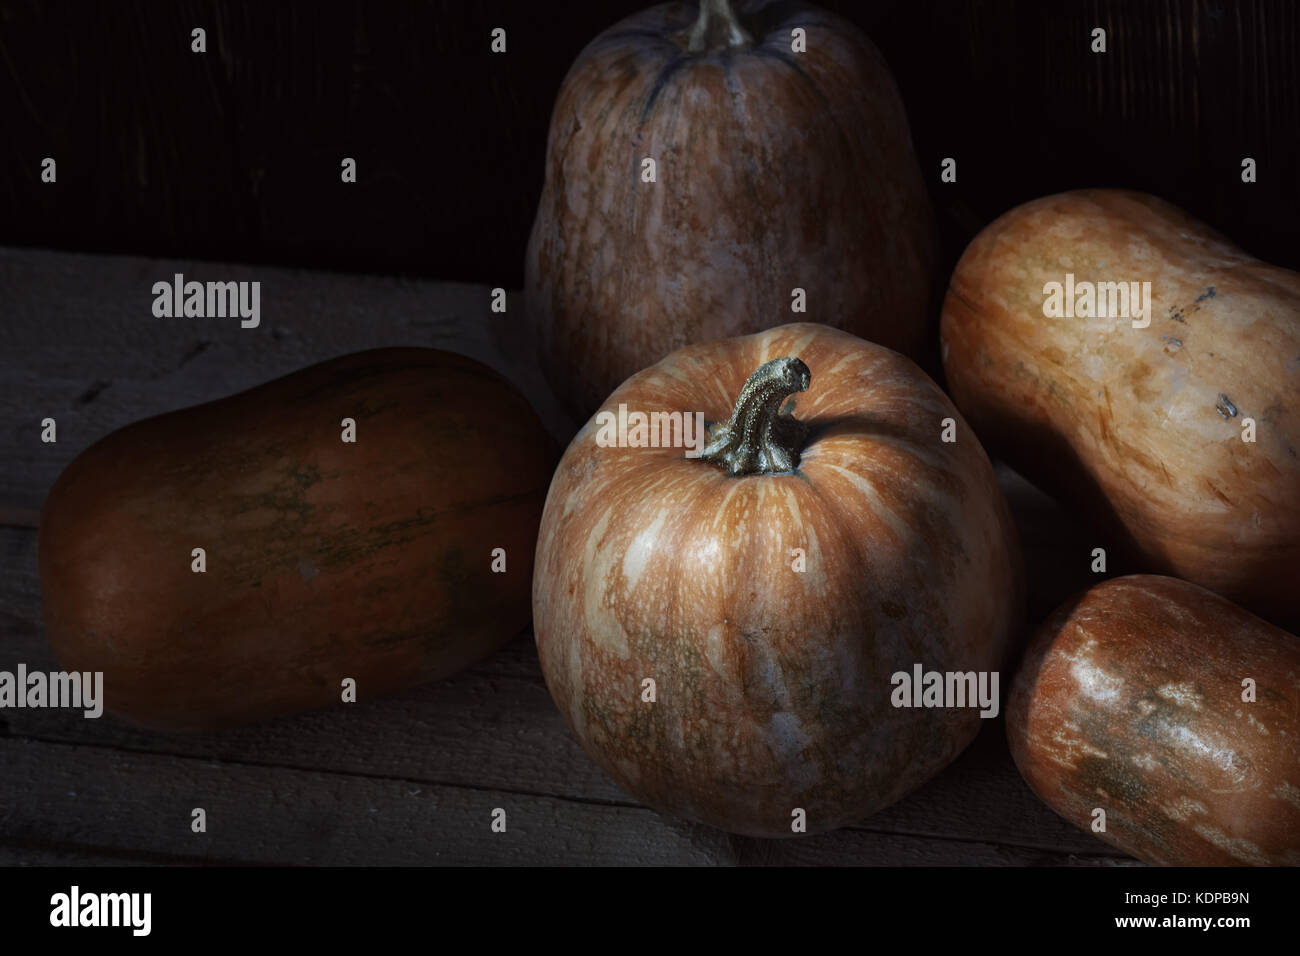 Group of pumpkins on a wooden table. High angle view Stock Photo